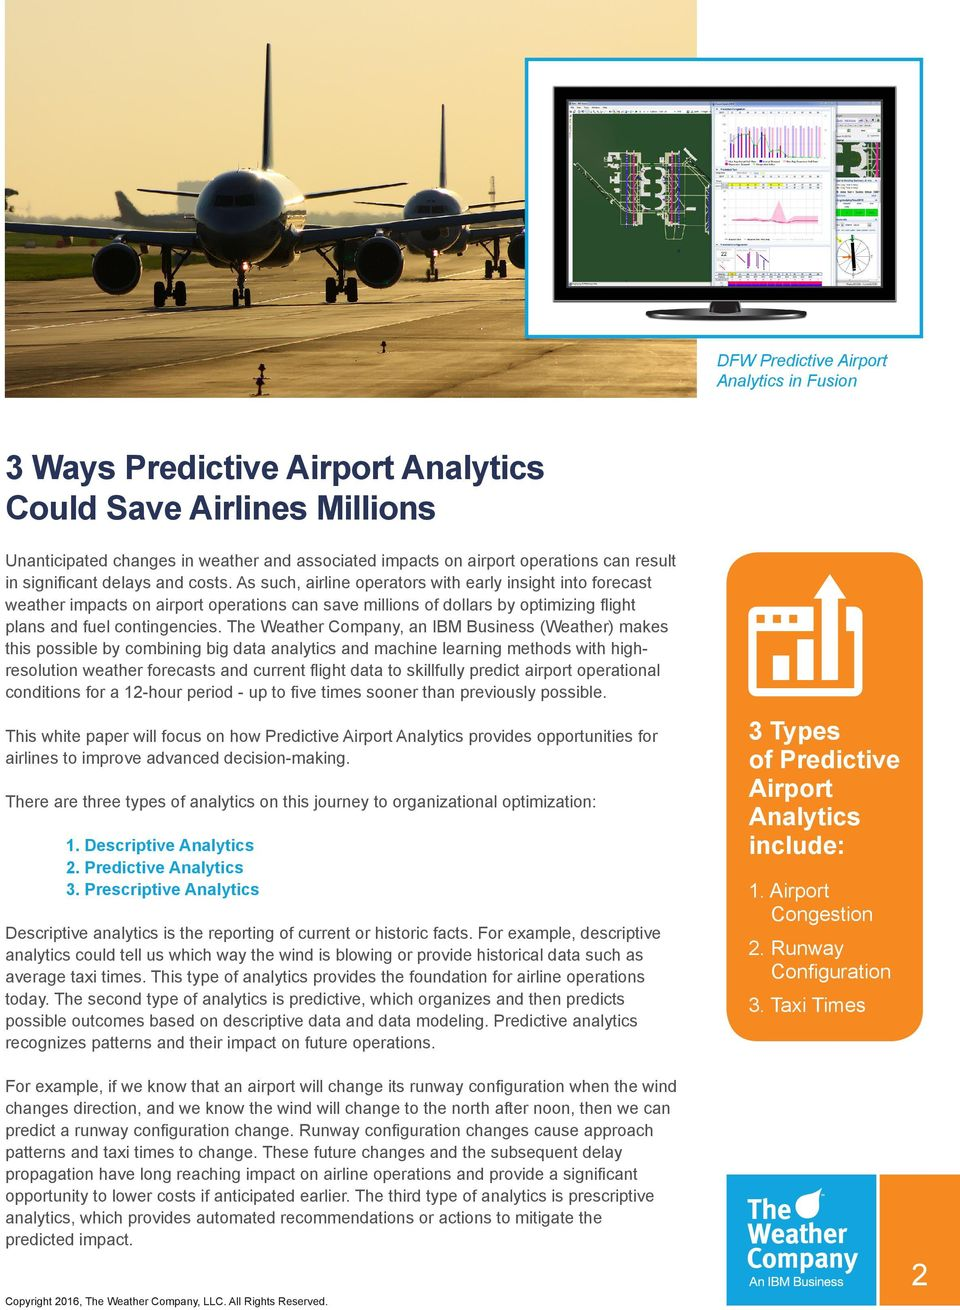 As such, airline operators with early insight into forecast weather impacts on airport operations can save millions of dollars by optimizing flight plans and fuel contingencies.